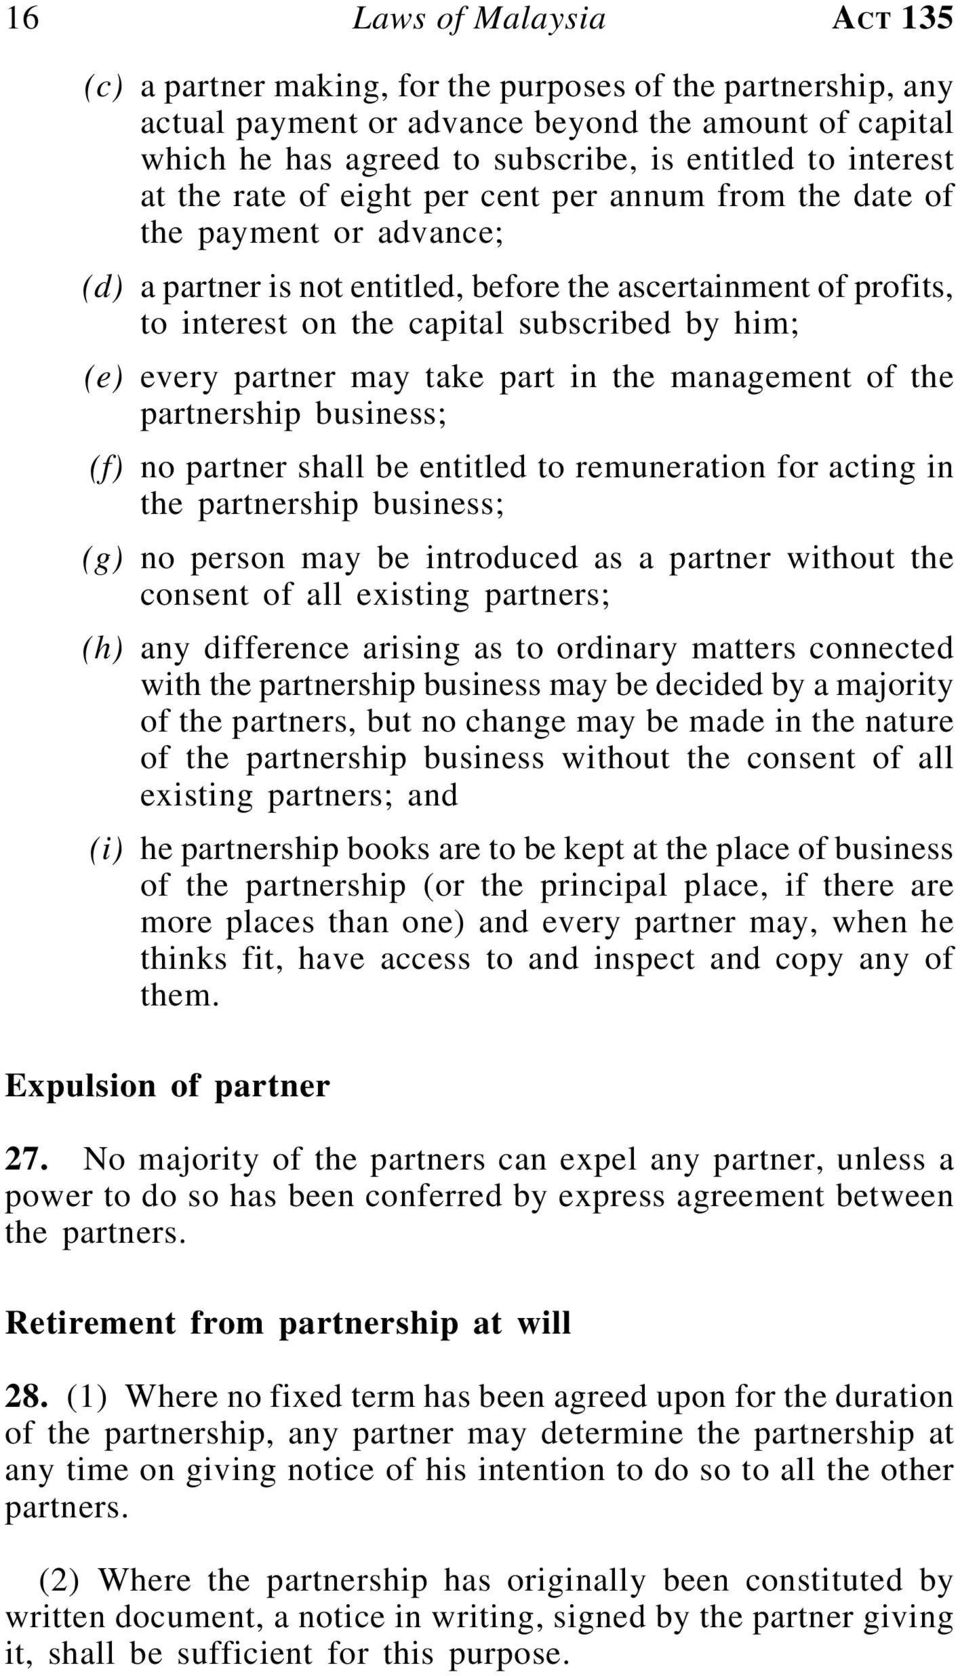 him; (e) every partner may take part in the management of the partnership business; (f) no partner shall be entitled to remuneration for acting in the partnership business; (g) no person may be